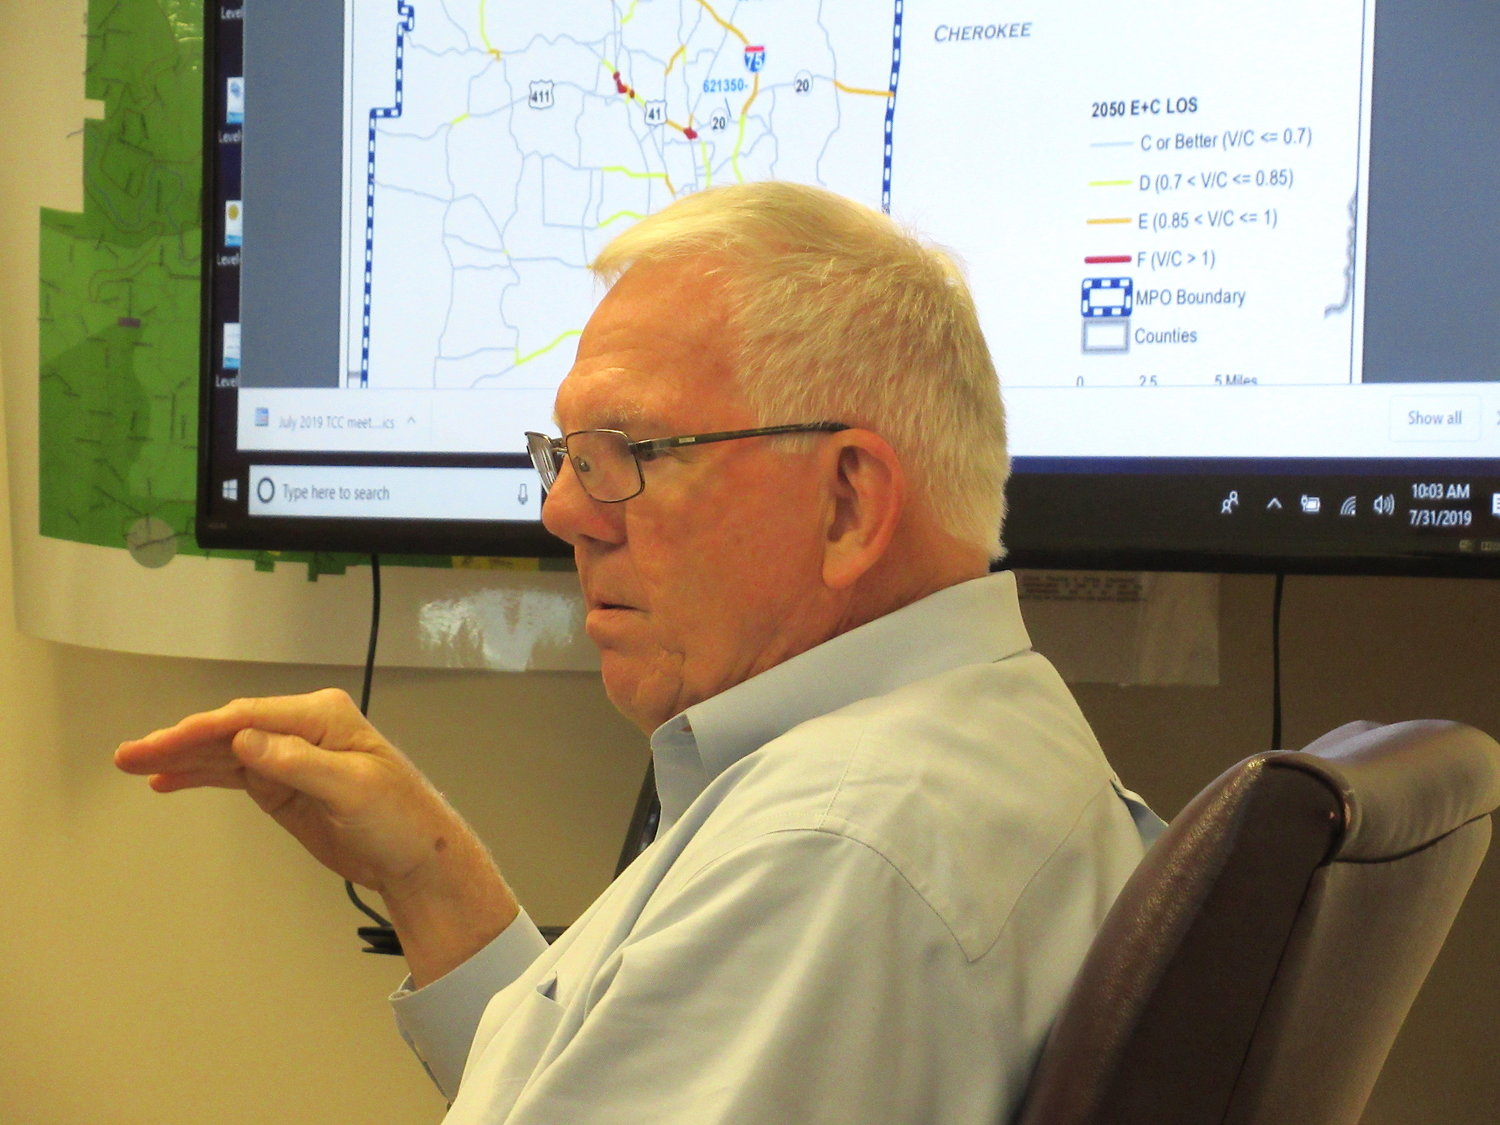 Cartersville-Bartow County Metropolitan Planning Organization transportation planner Tom Sills proposes reducing budgeted special studies funding from $60,000 to just $2,000.